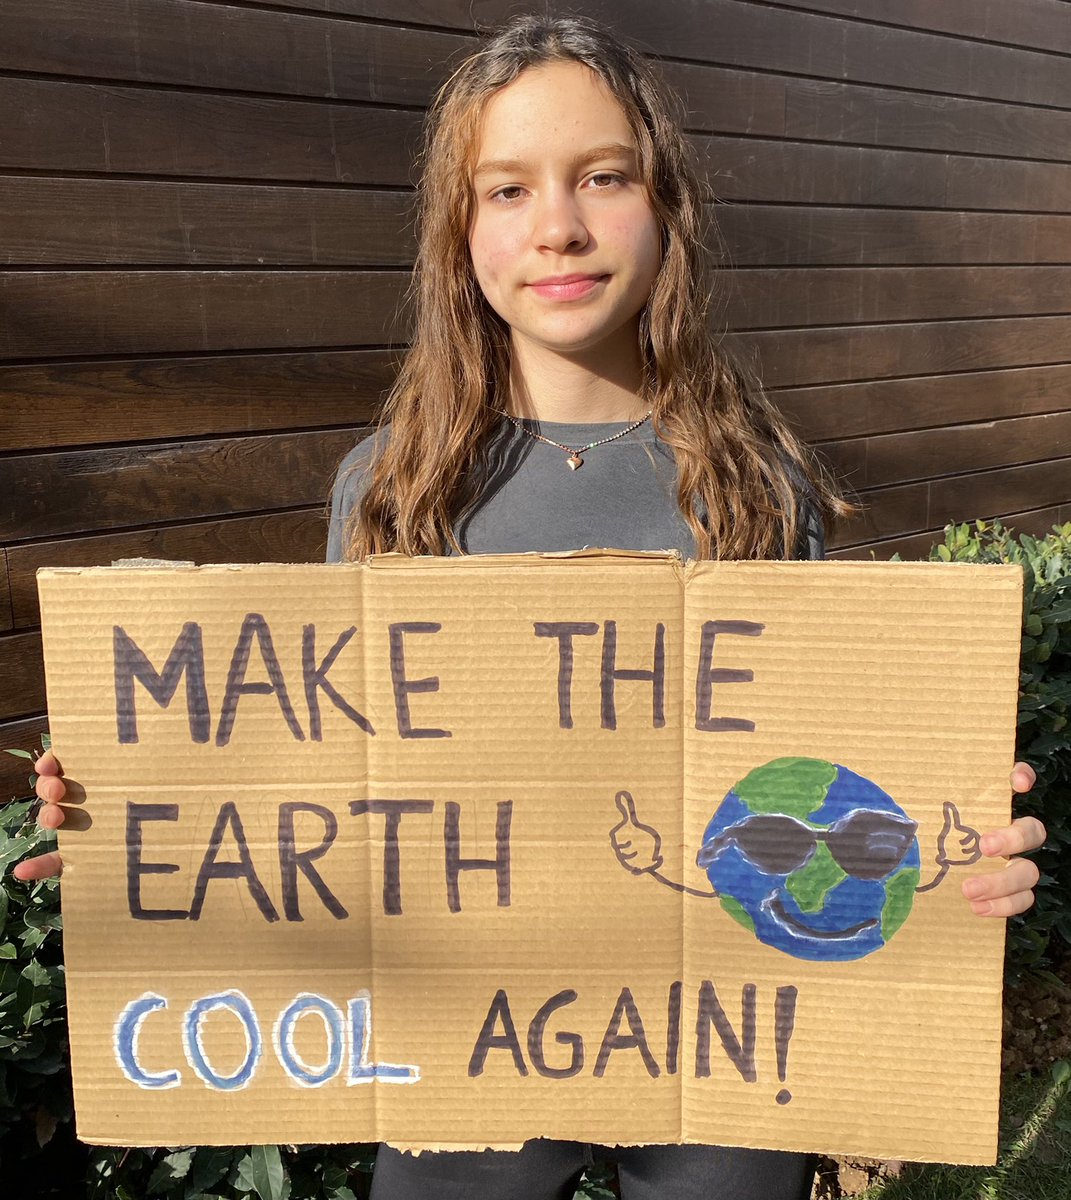 Global warming is taking our winters away. Some experience droughts, some experience floods. That's why we need #ClimateJustice ! Our home is on fire. Take action to save it before it's too late!🌏🔥  • #FridaysForFuture #schoolstrike4climate #ClimateAction  #ClimateStrike